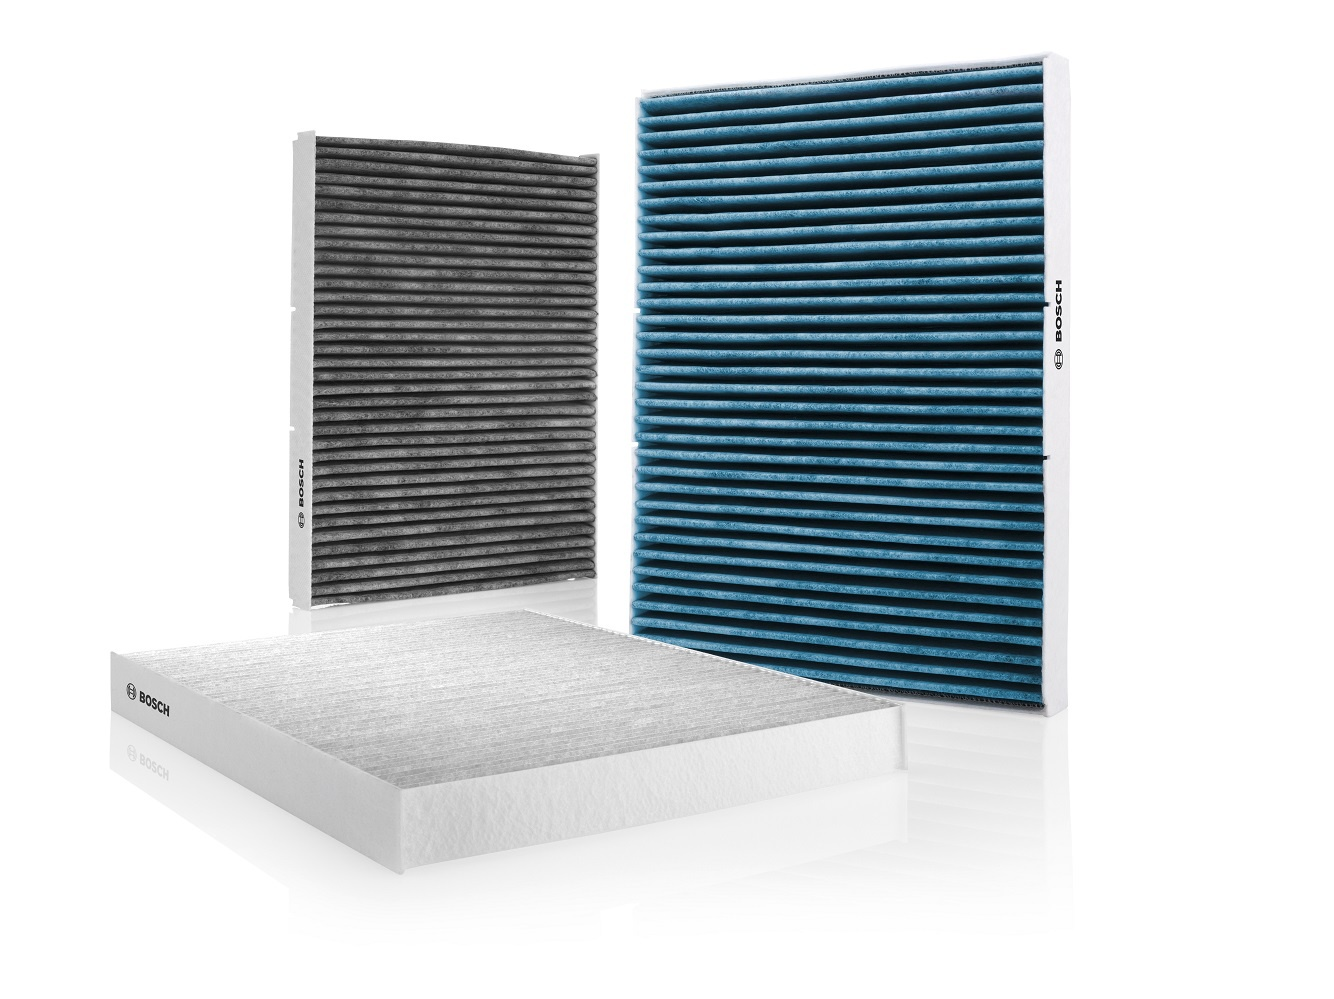 Broad range of Bosch cabin filters for electric vehicles